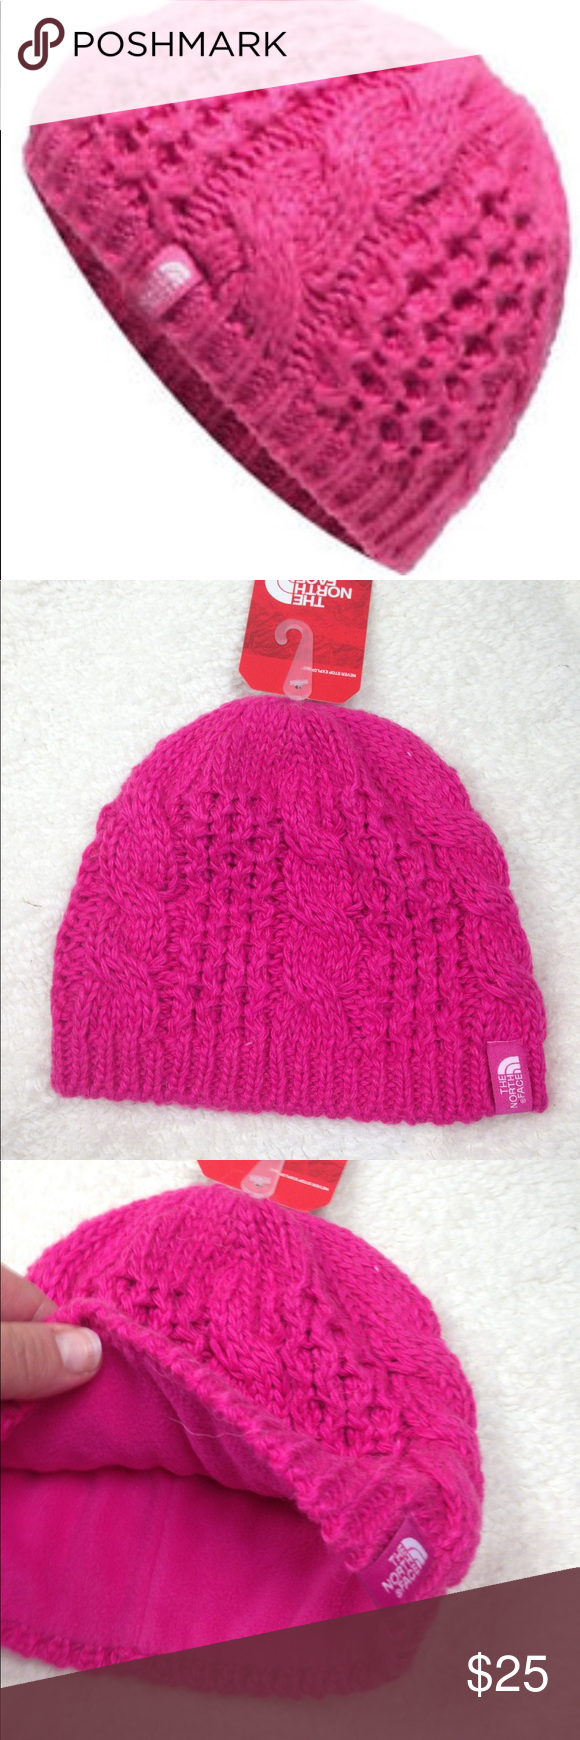 77461148734 New The North Face Cable Knit Hat Youth Medium Cable Minna Cabaret Pink  Beanie Youth medium The North Face Accessories Hats